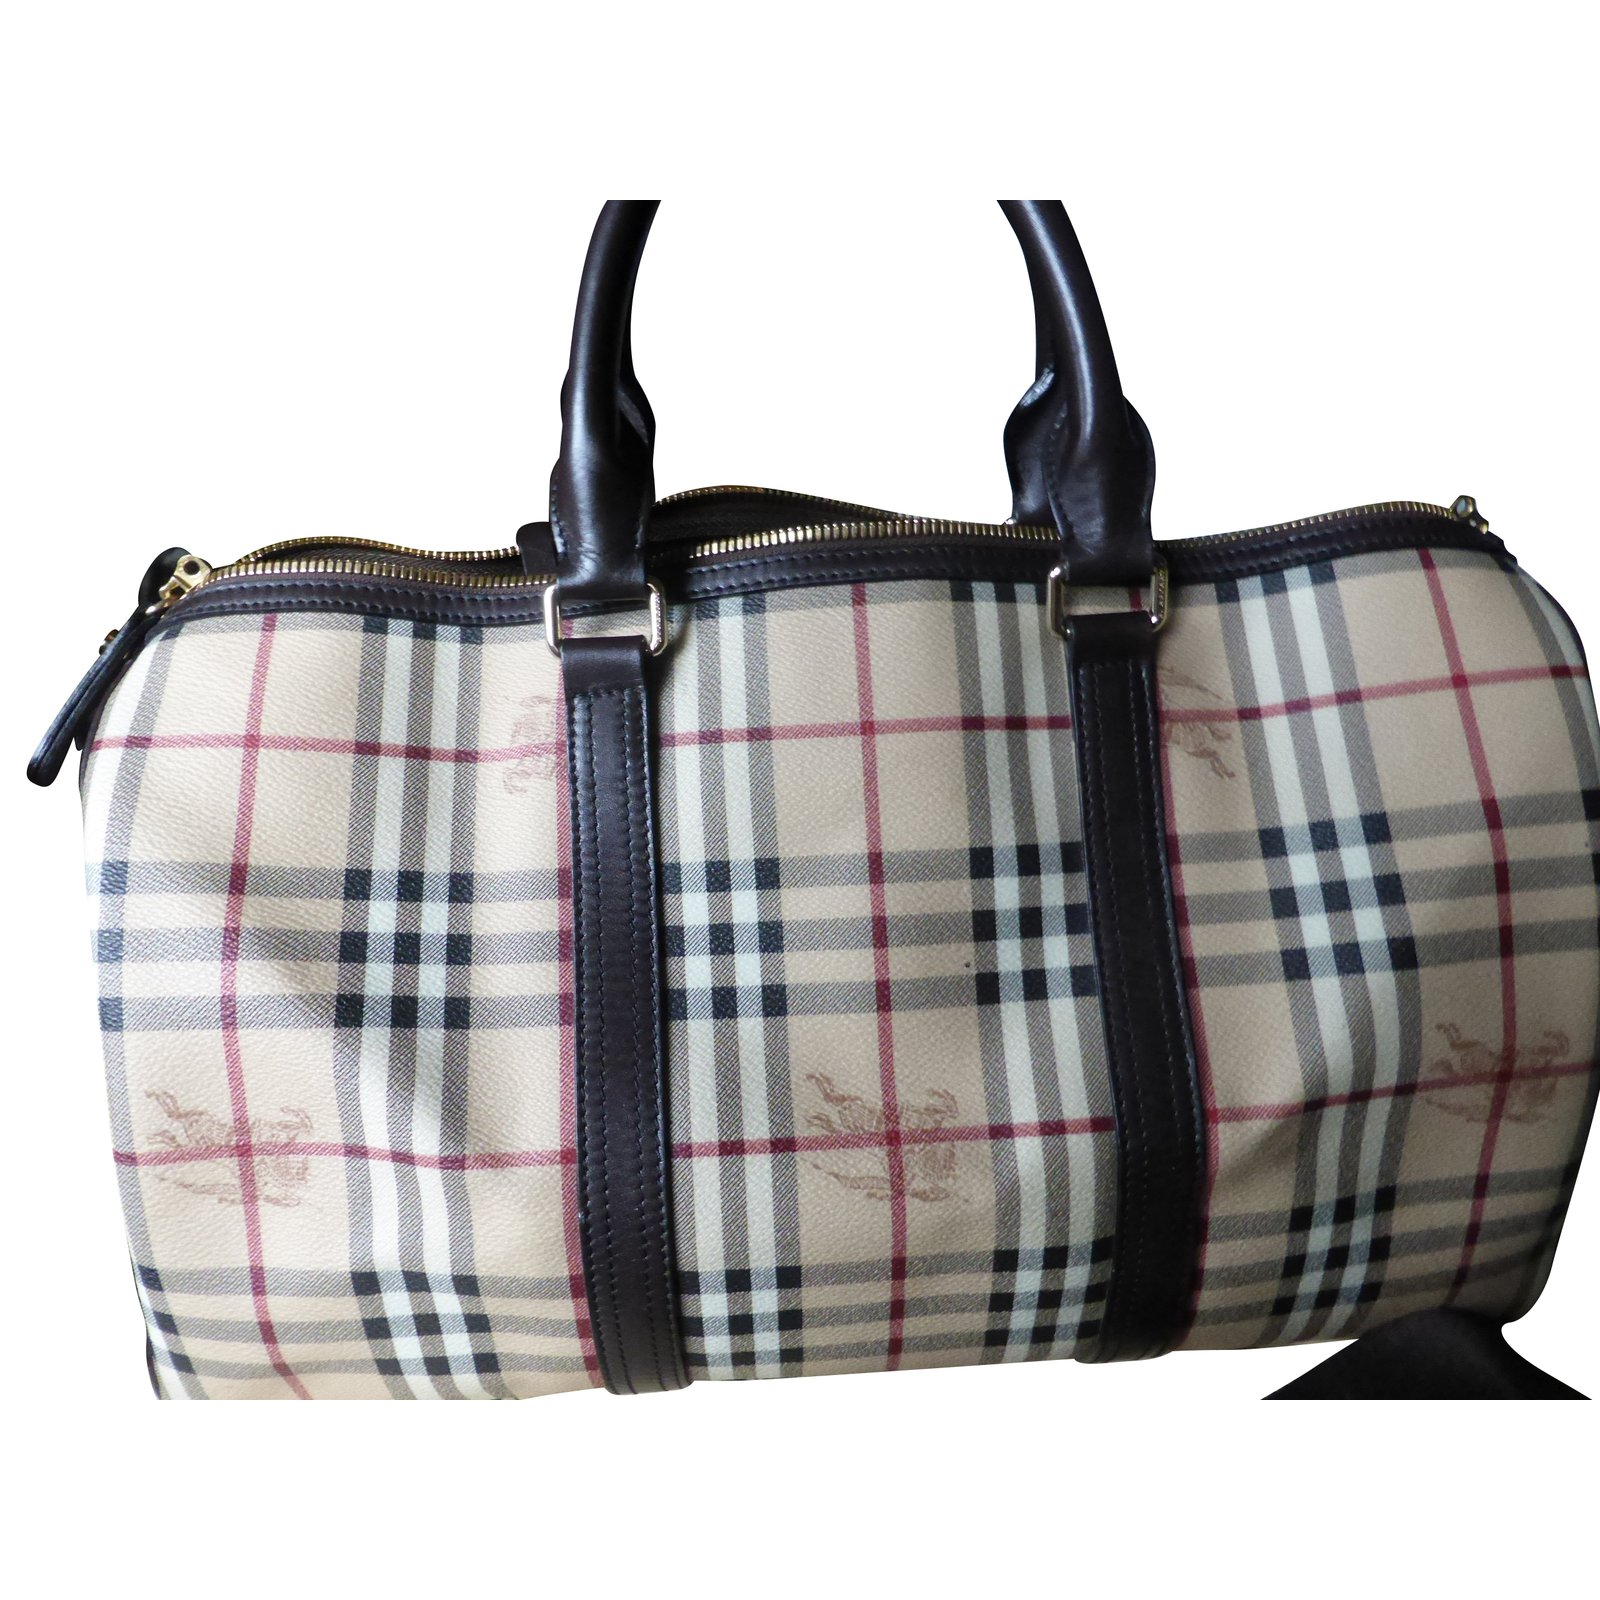 Burberry Travel Bag Leather Other Ref 56975